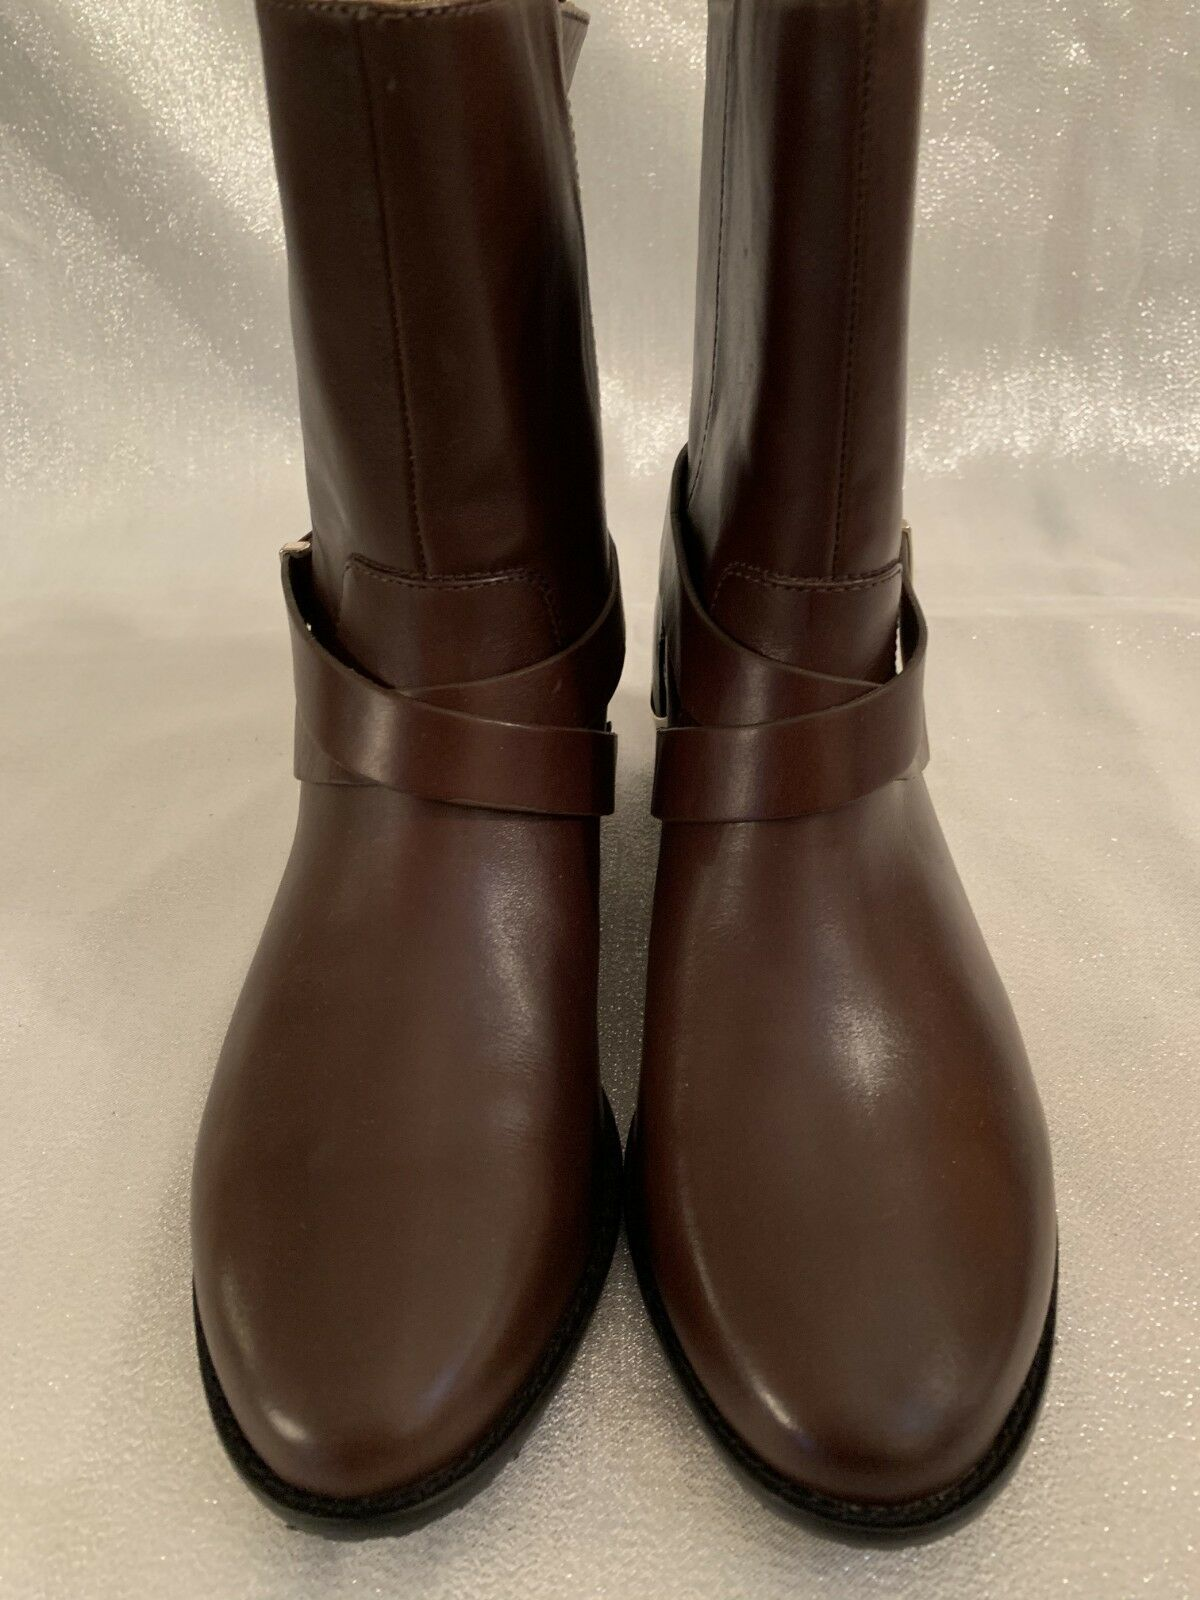 ELAINE TURNER WOMEN'S BROWN ANKLE BOOTS BOOTS BOOTS WITH METAL TRIM SIZE 6 76e2f7